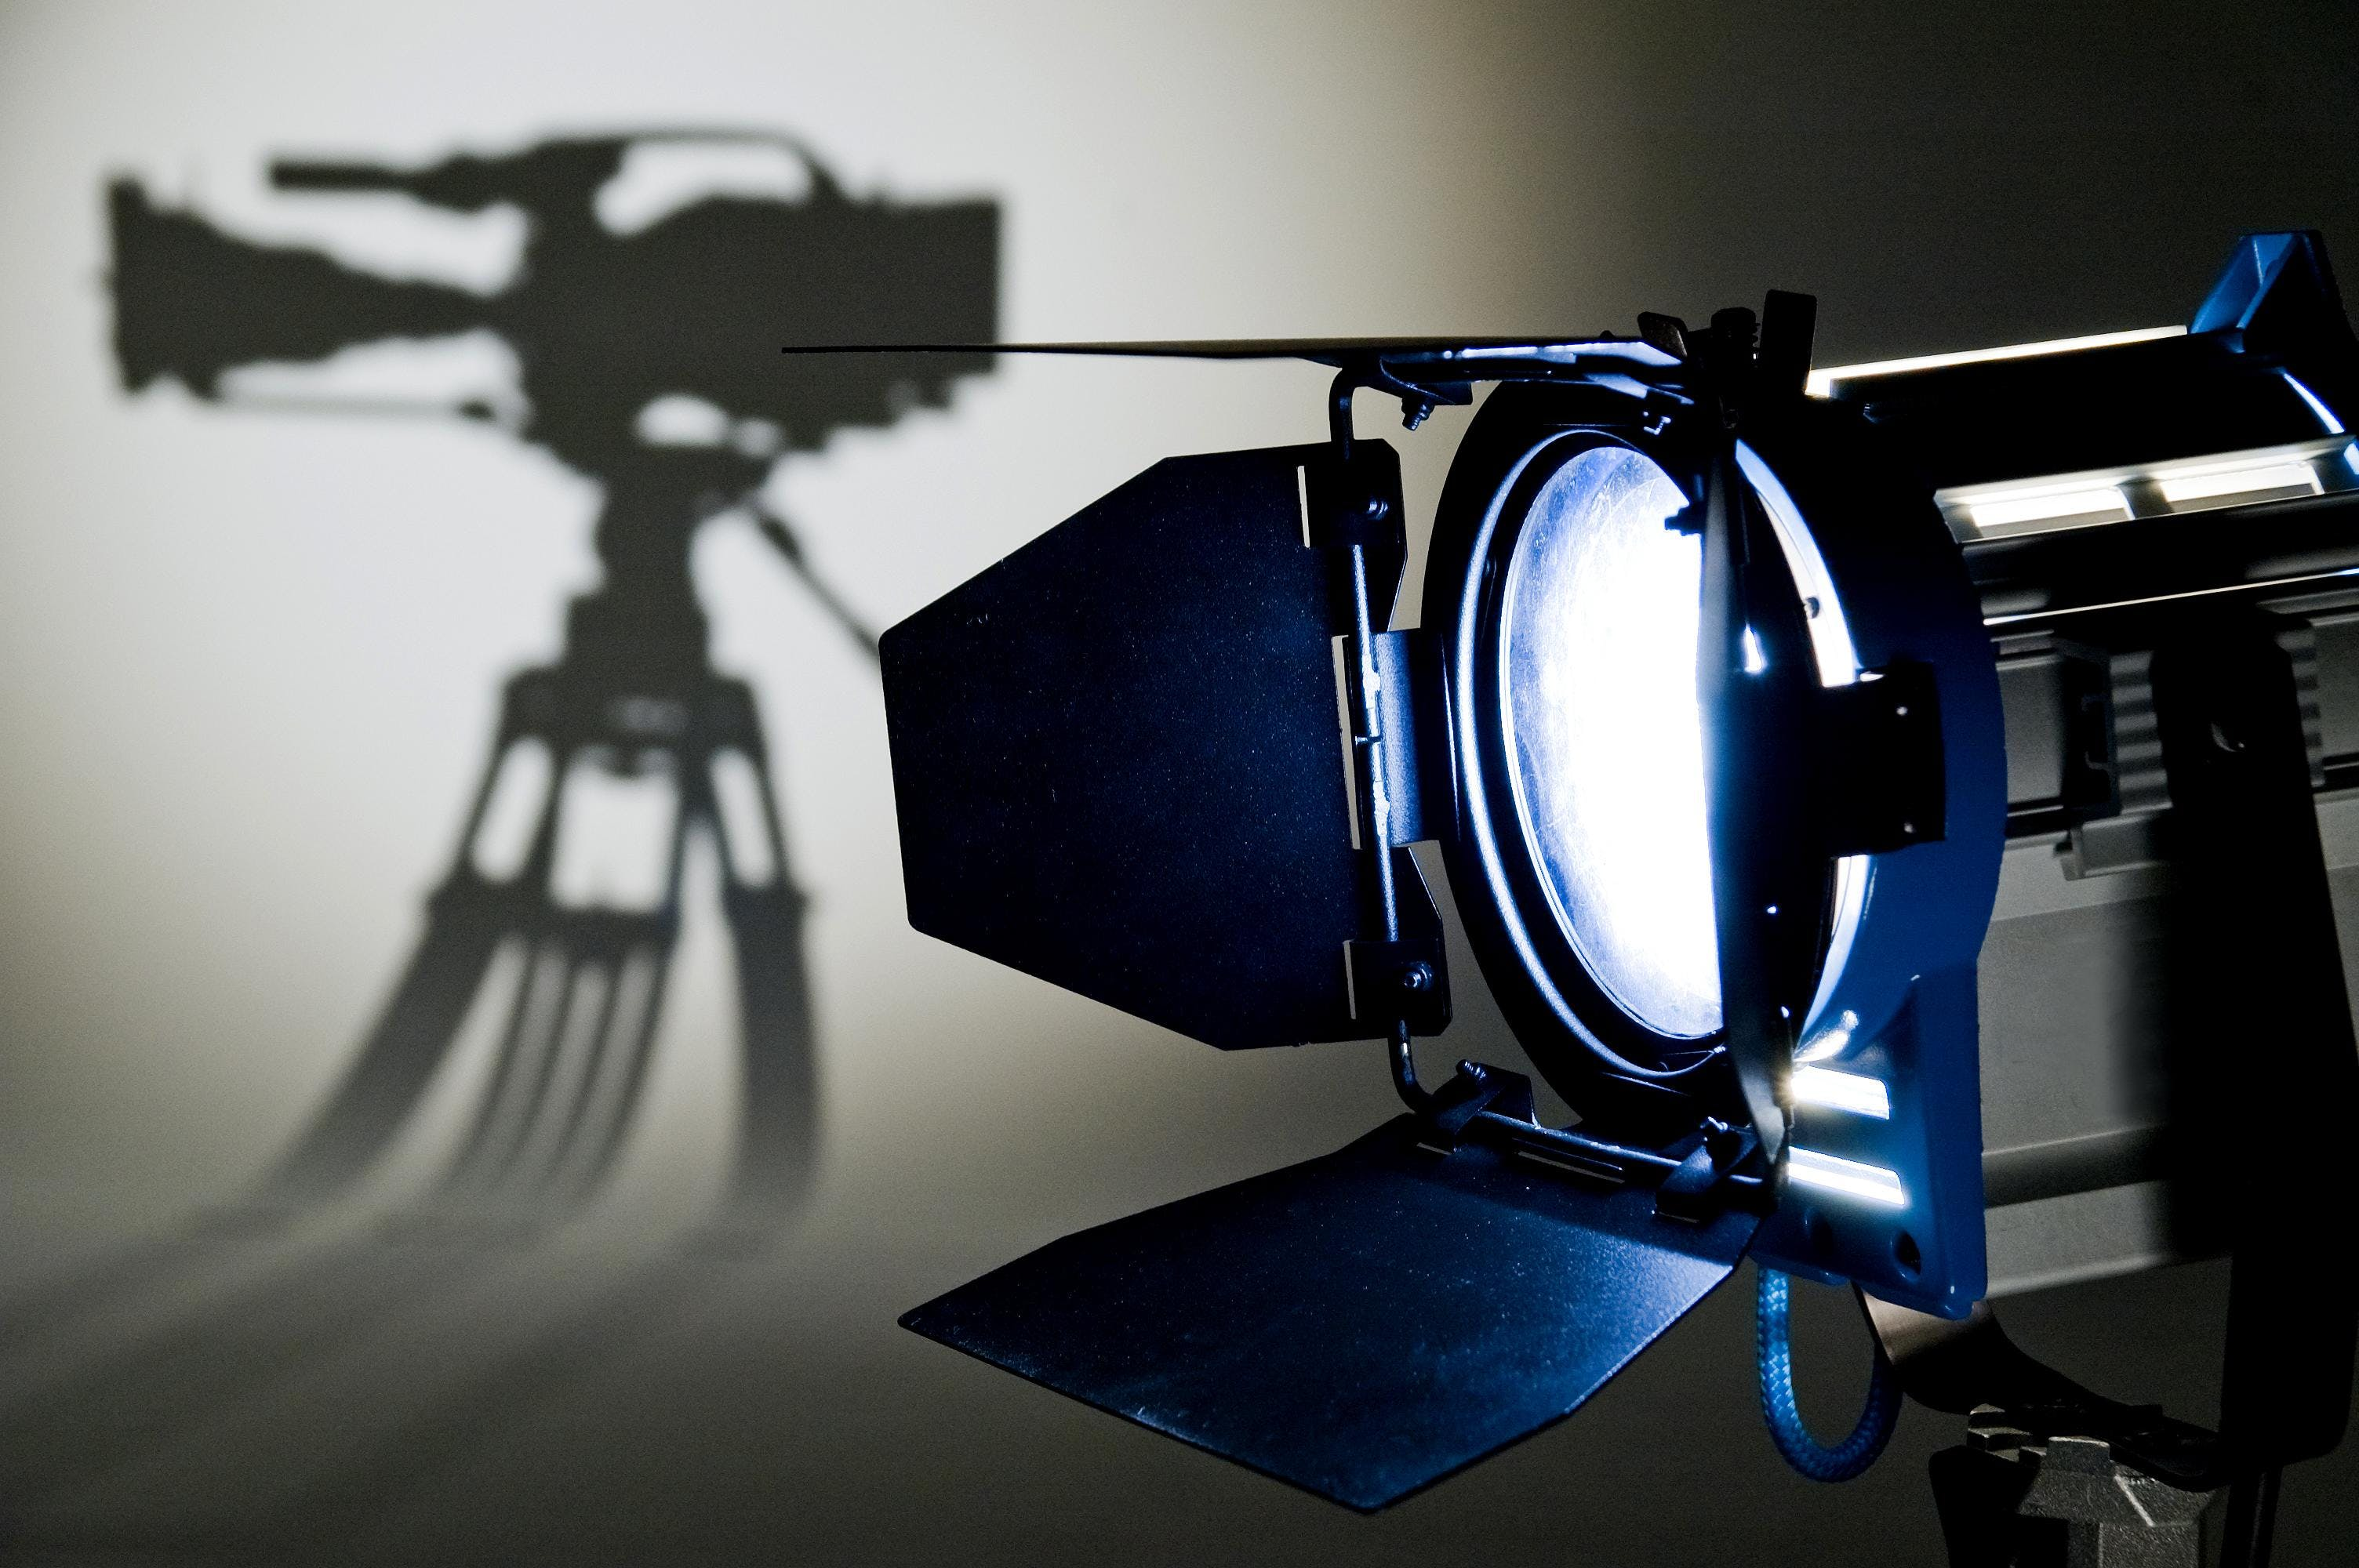 Lights, Camera, Action! Using Video to Give Students a Voice (Grades 6-12) - Boston, MA